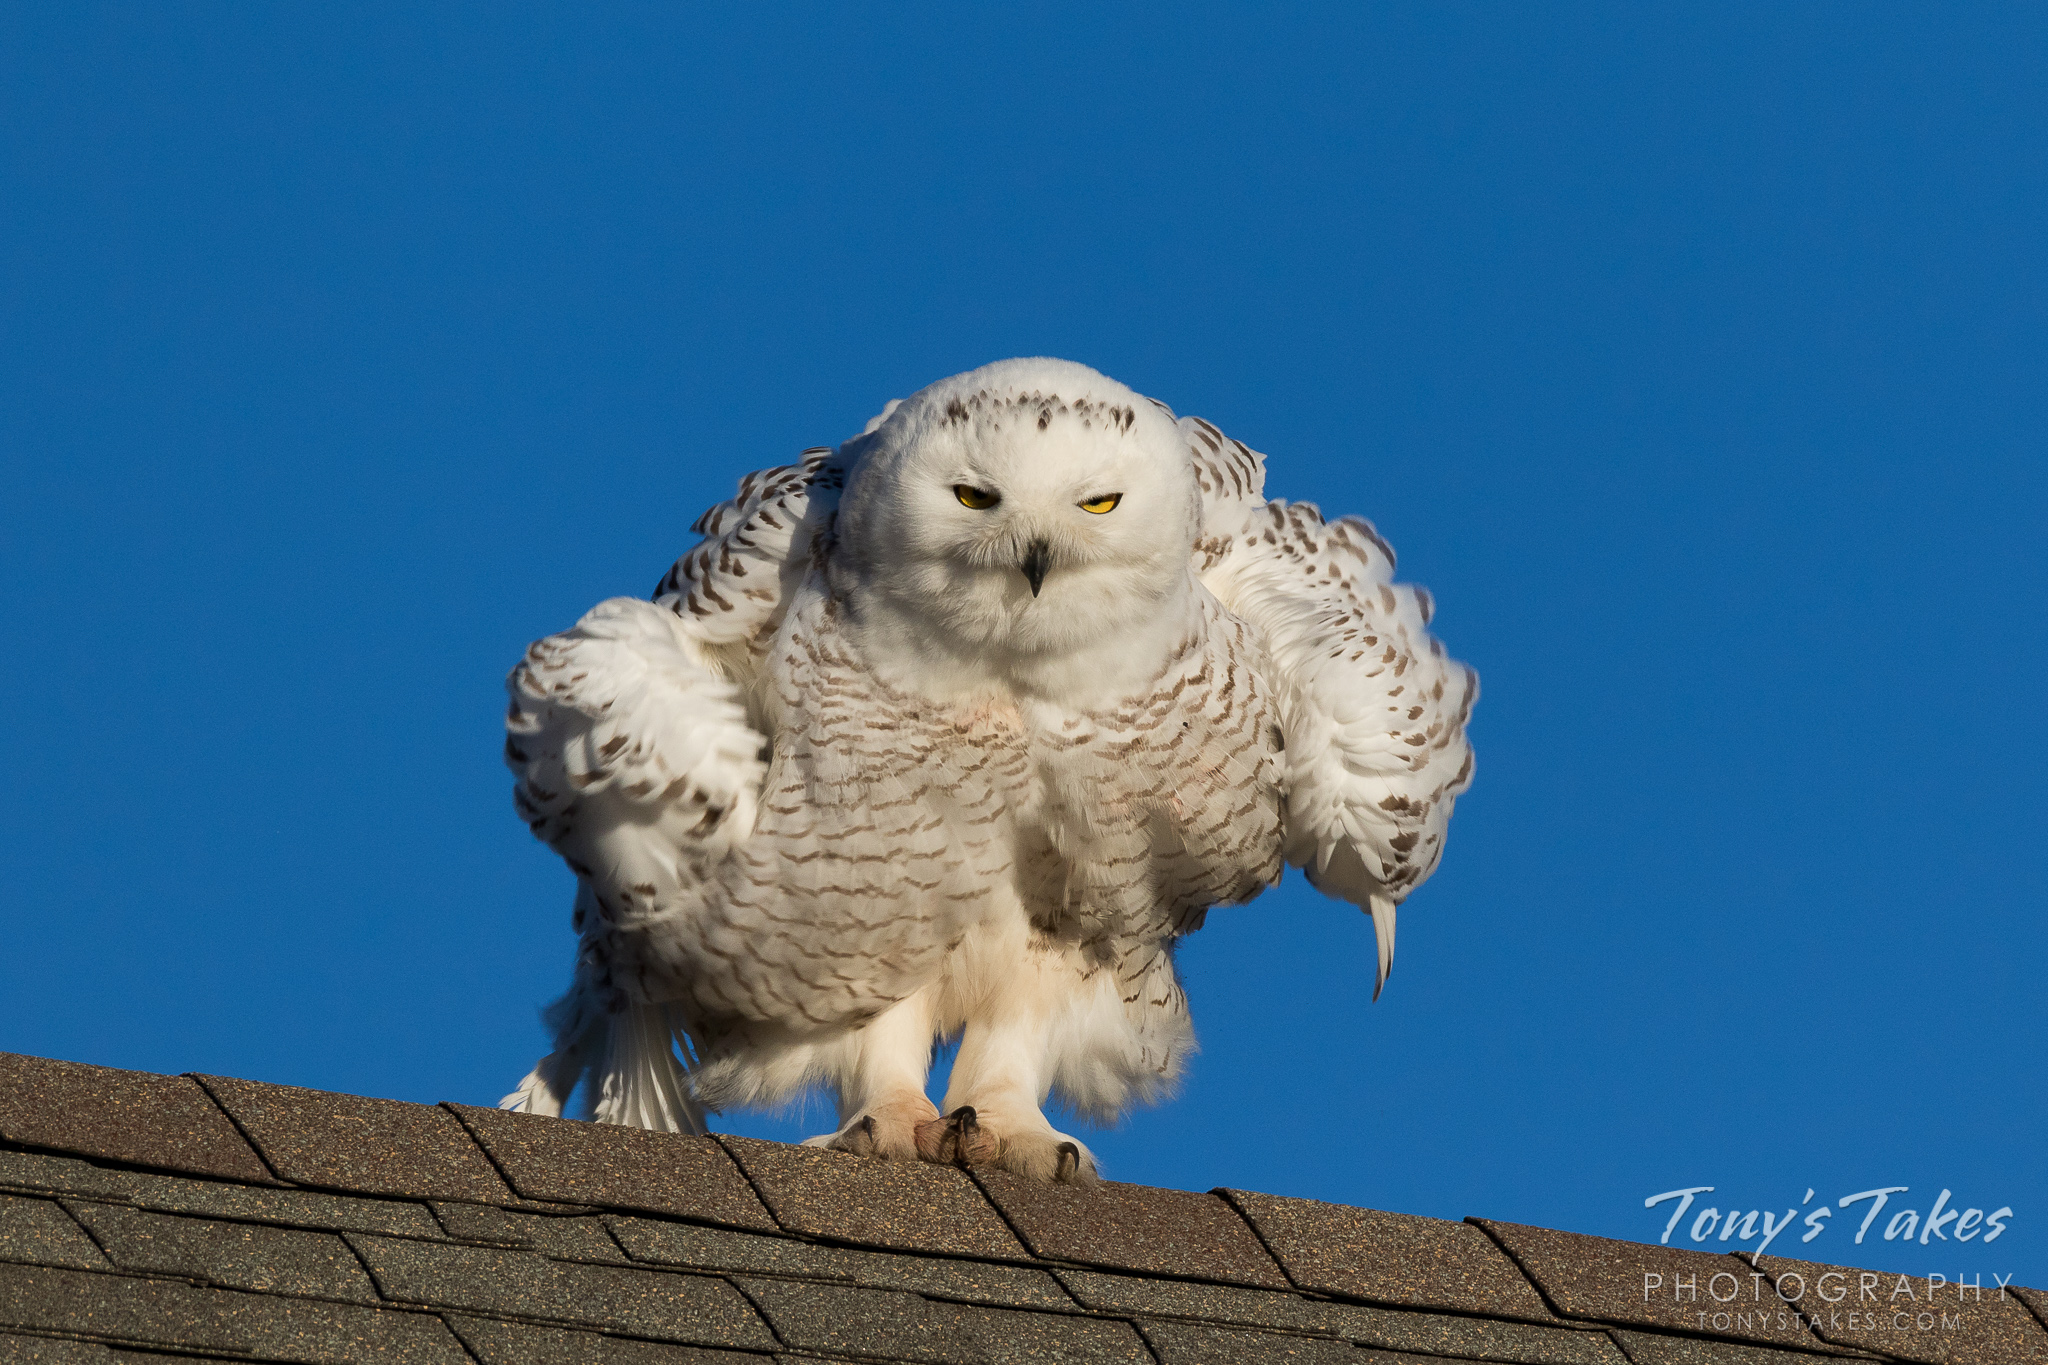 Shaking it up for Snowy Owl Sunday!